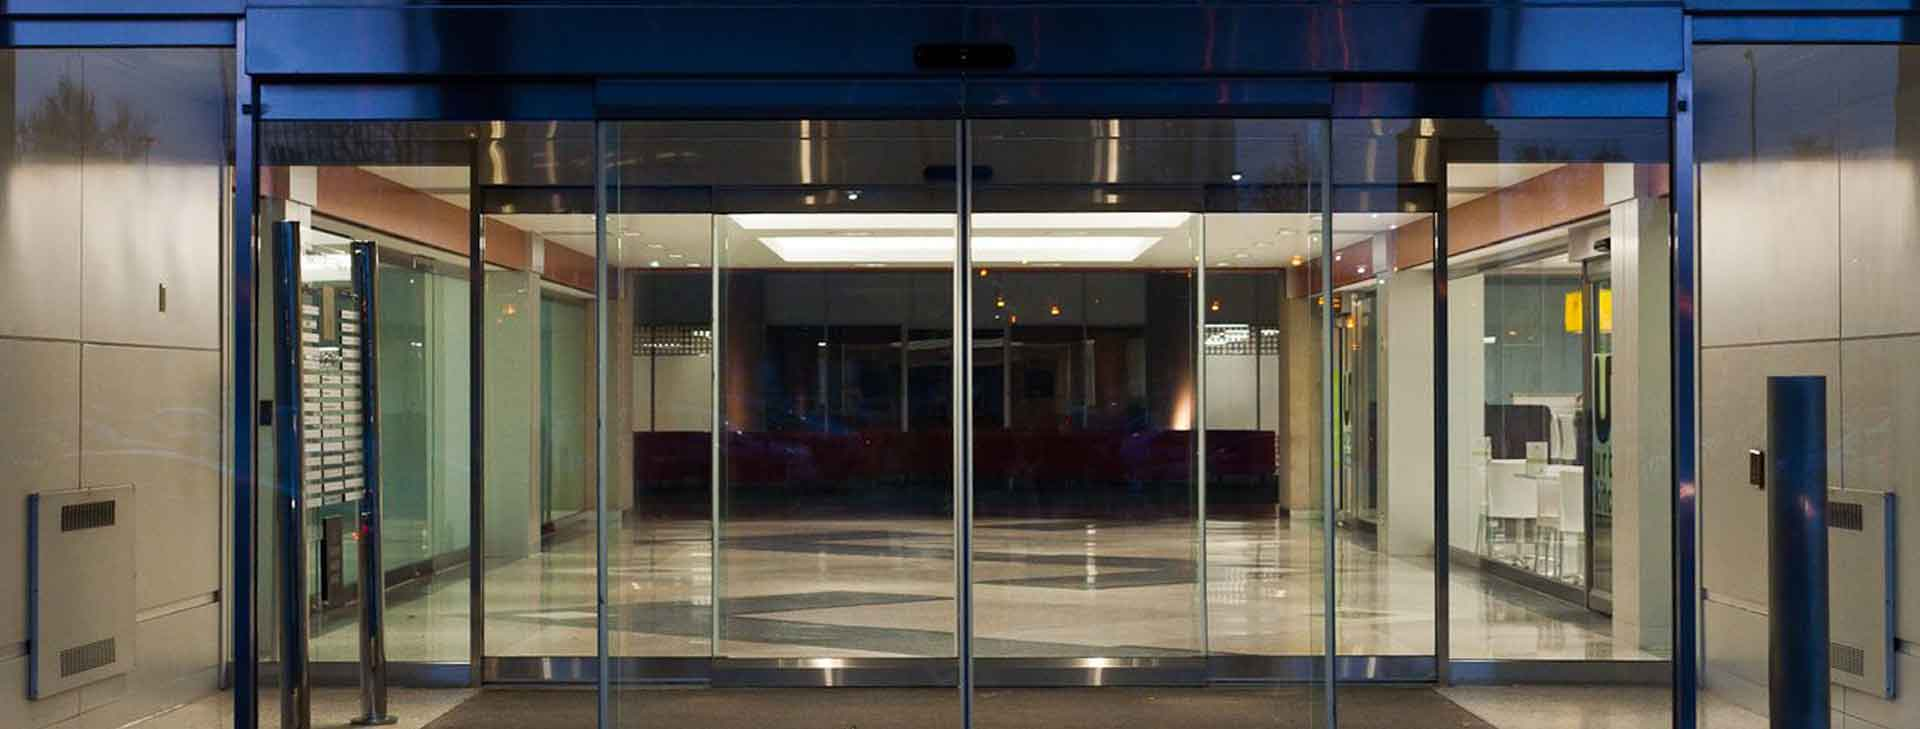 Automatic Sliding Door Buy Product On Guangzhou Topbright